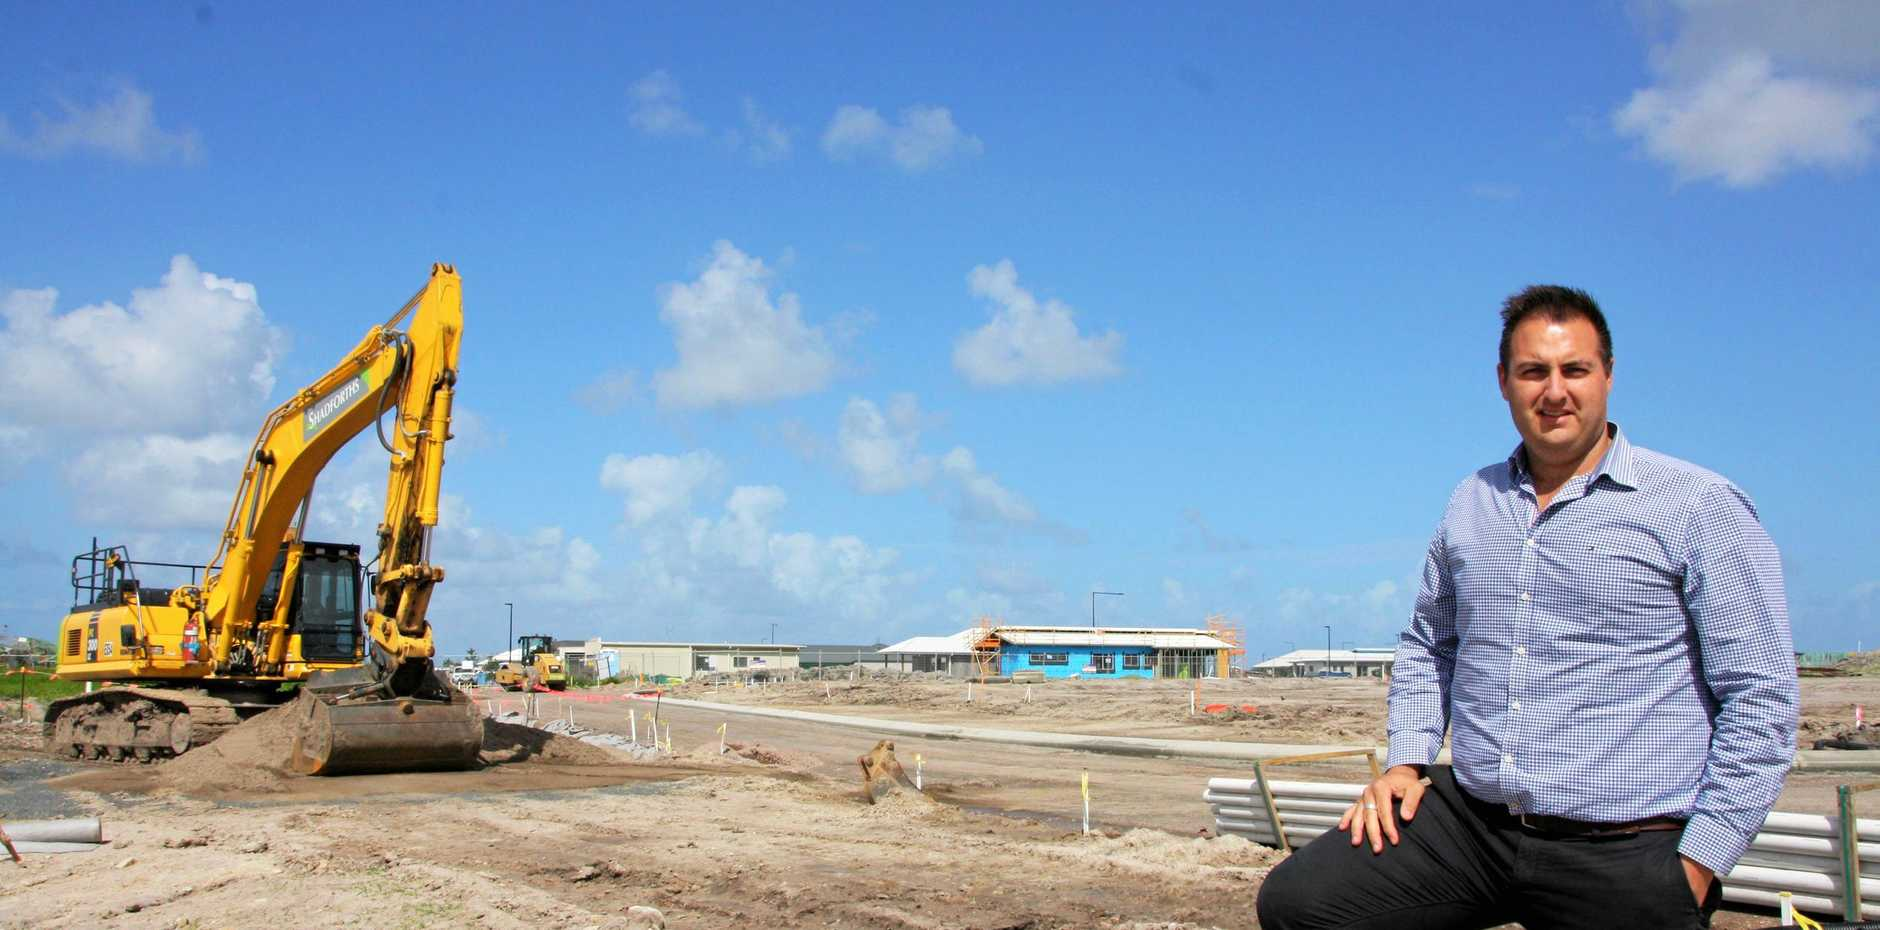 AVID Property Group's Anthony Demiris on site at Harmony, Palmview.